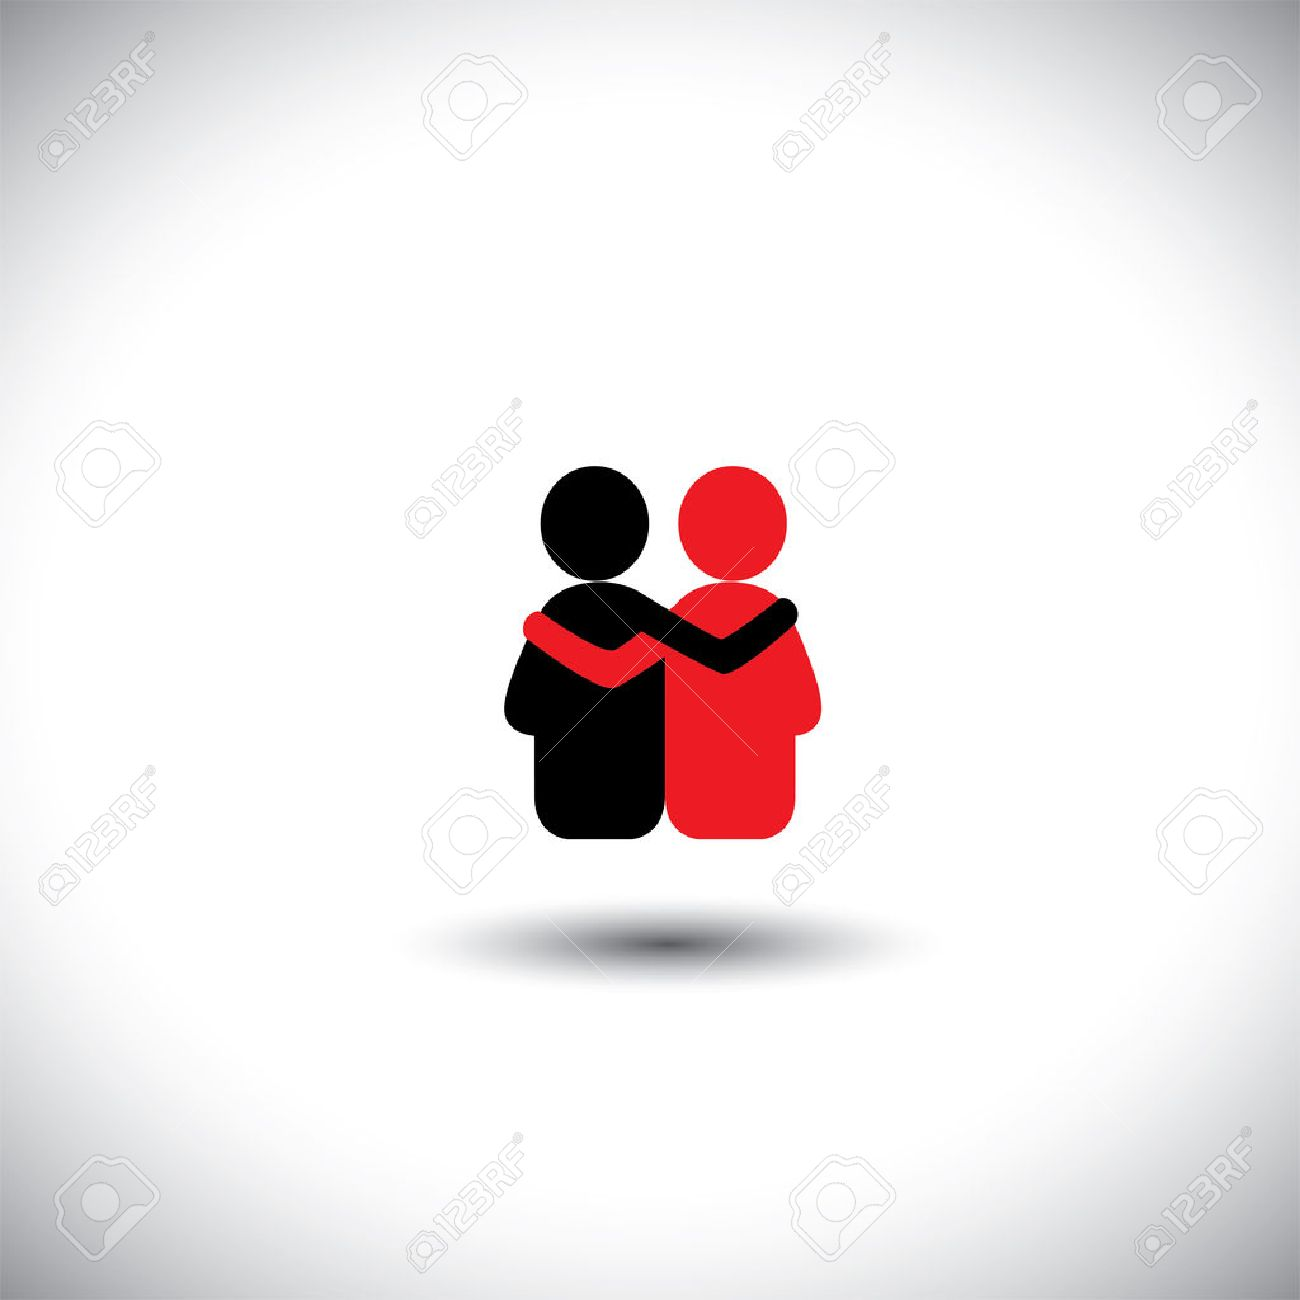 friends hug each other, deep relationship & bonding - vector icon. This also represents reunion, sharing, love, emotions, human touch, friendly embrace, support, care, kindness, empathy, compassion - 37068747